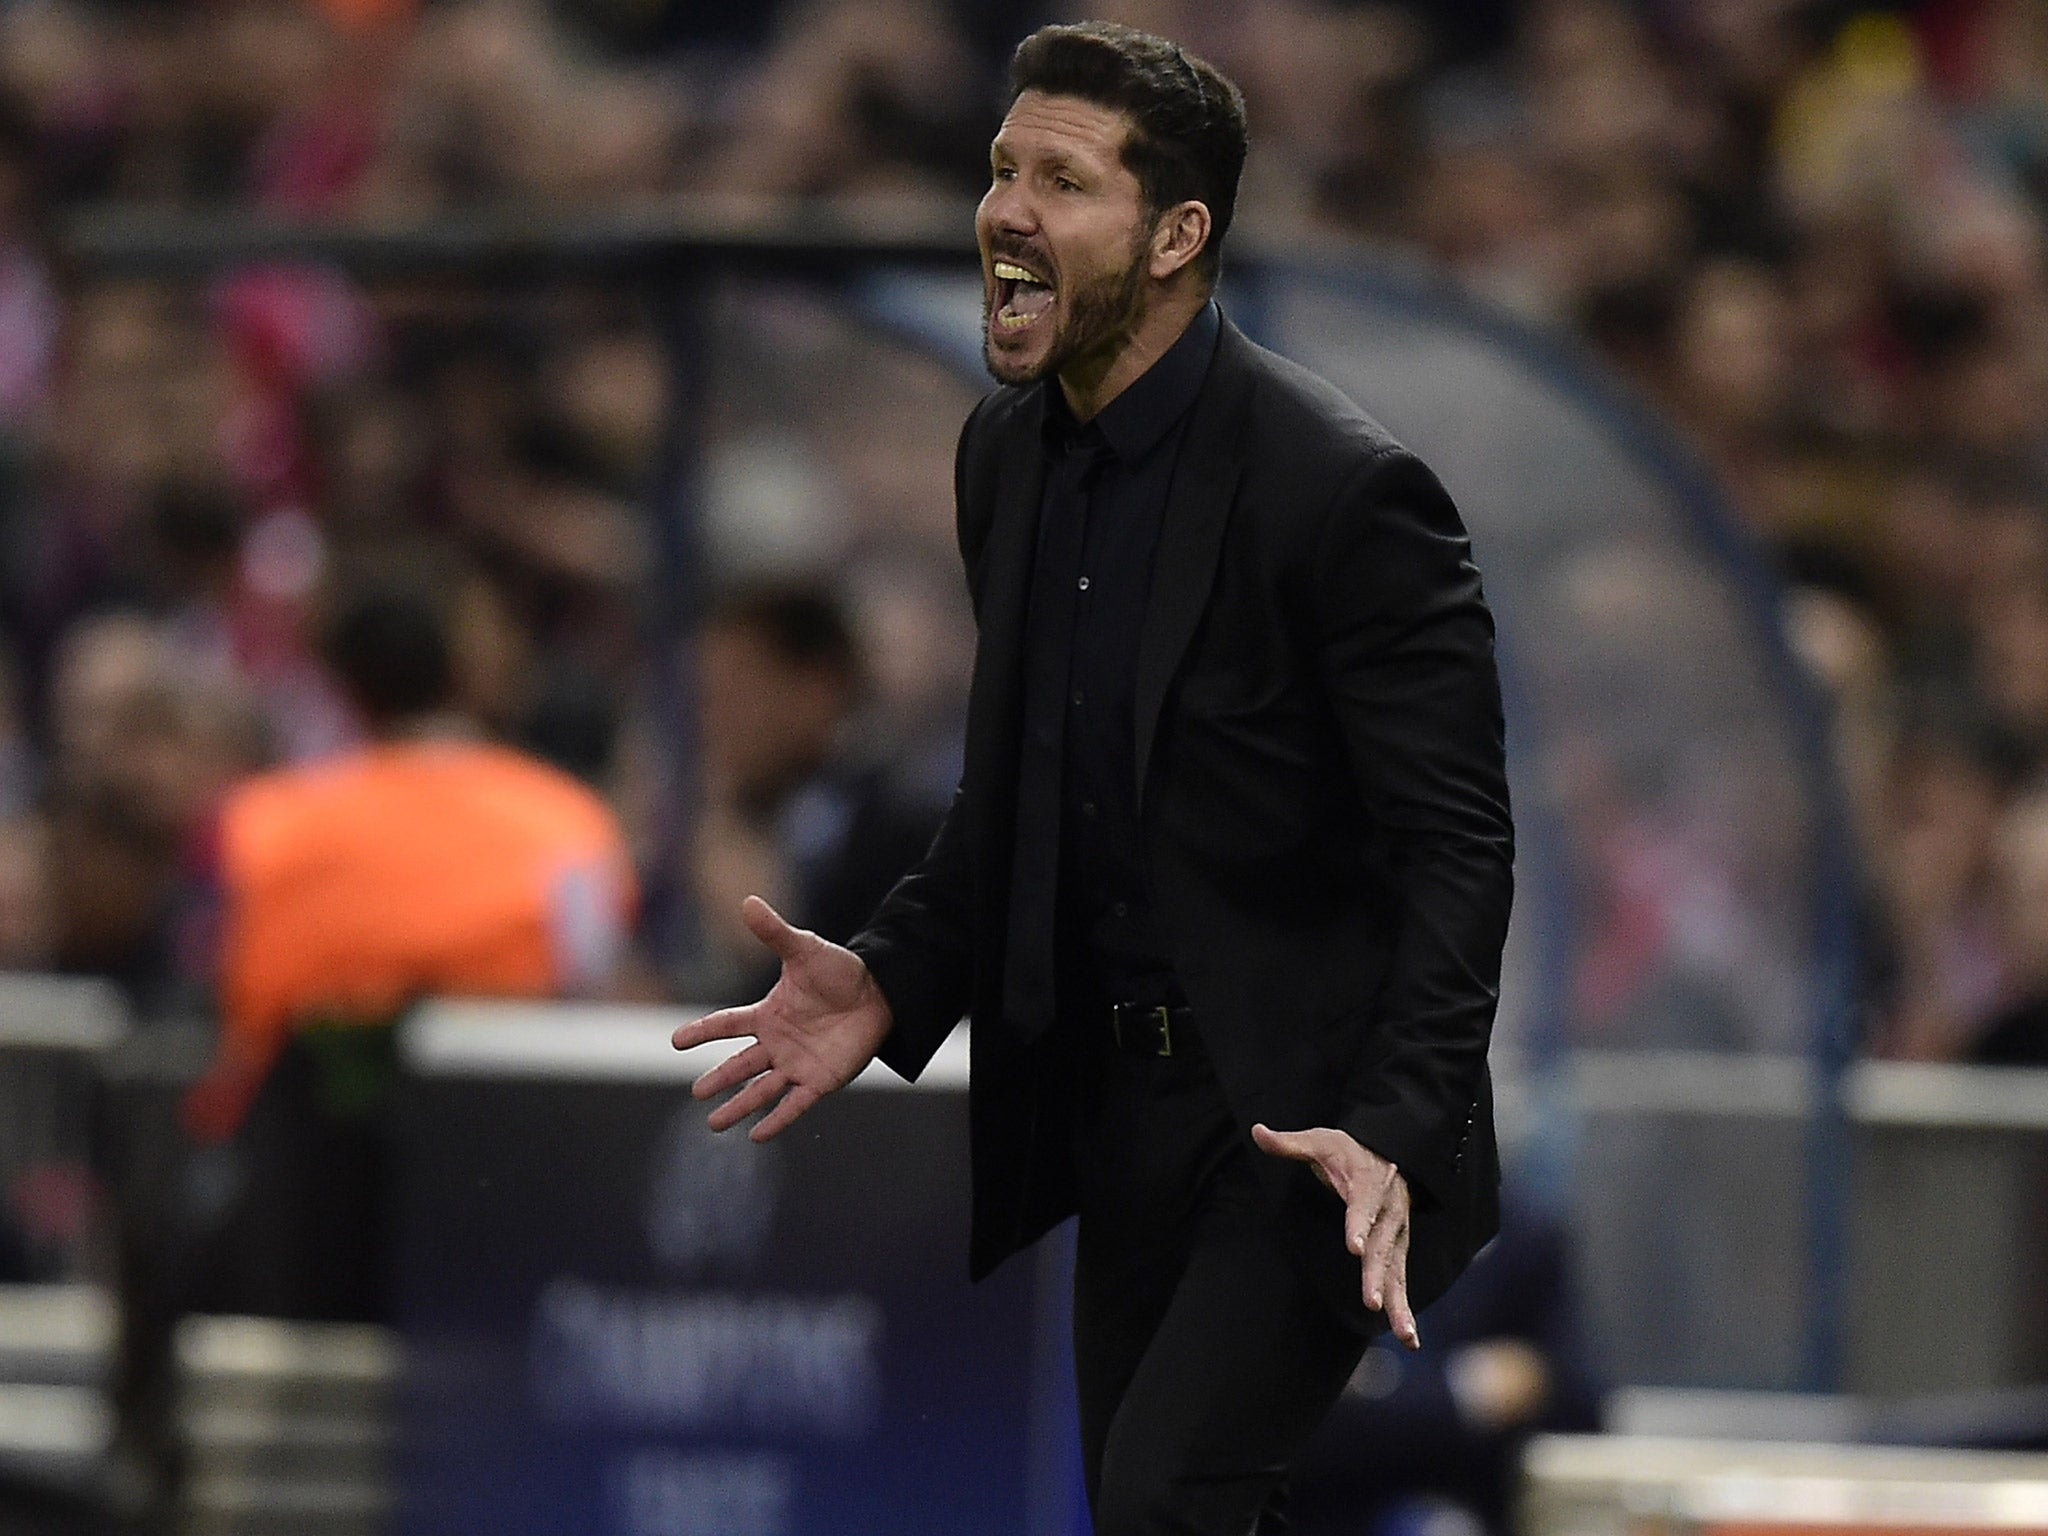 Arsenal news: Diego Simeone the 'obvious choice' to replace Arsene Wenger, says Ray Parlour